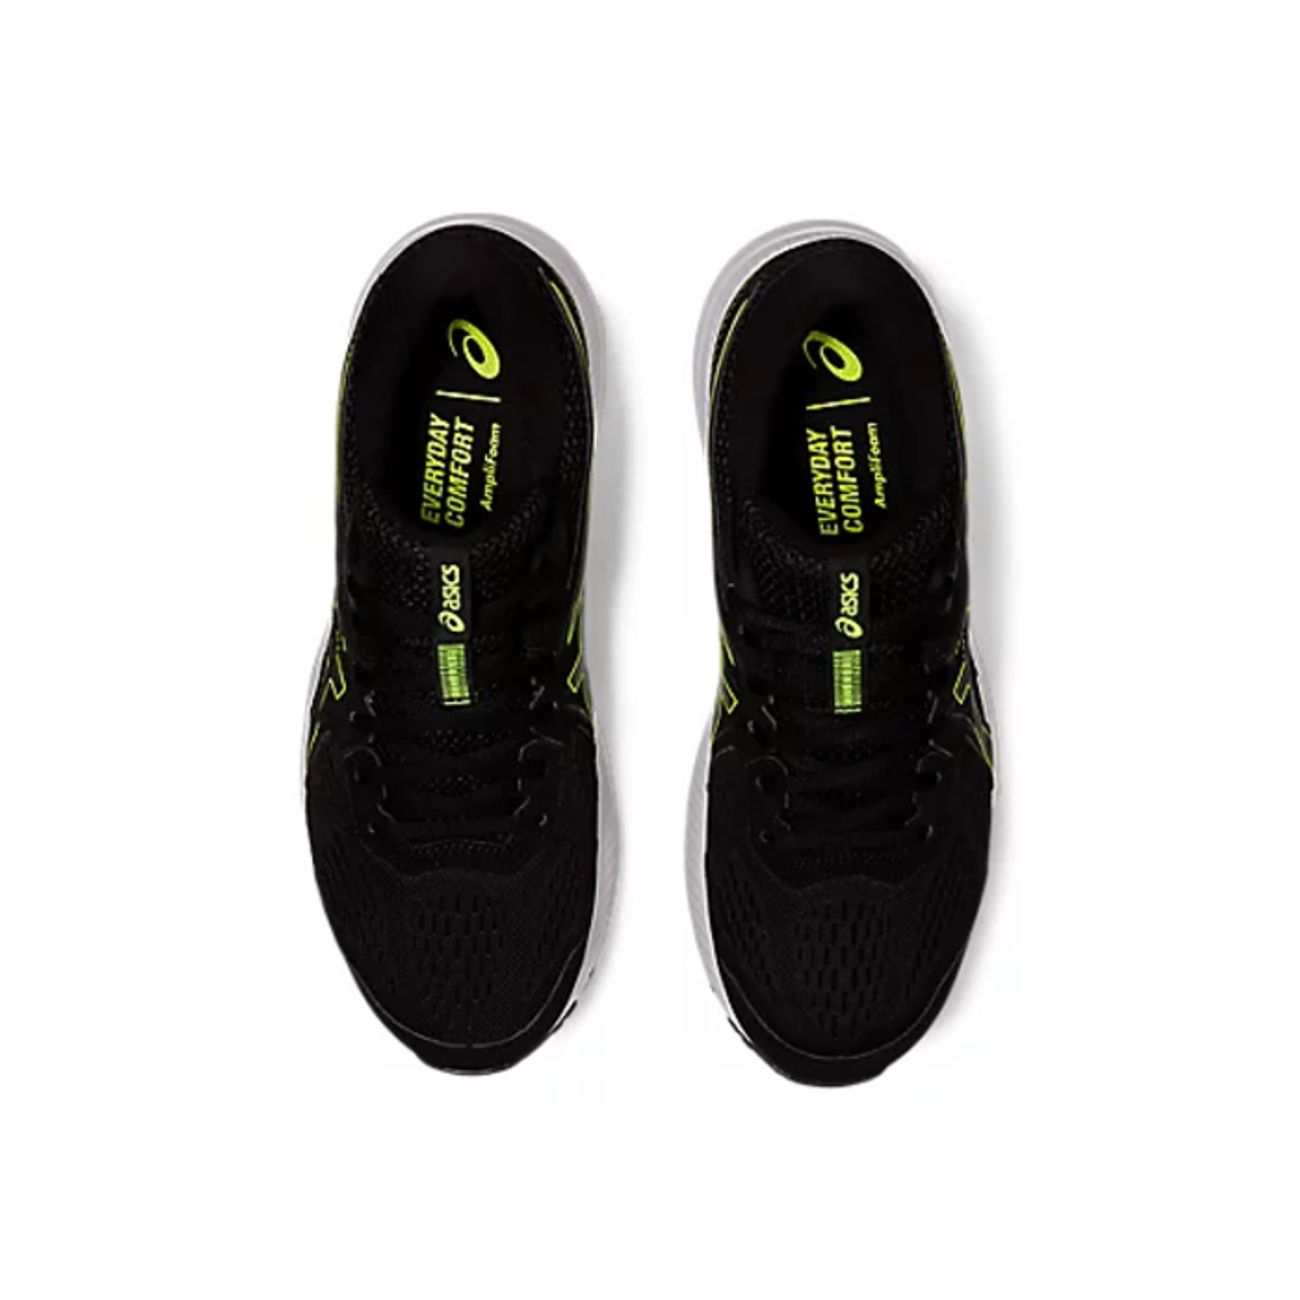 CHAUSSURES BASSES Route homme ASICS GEL-CONTEND 7